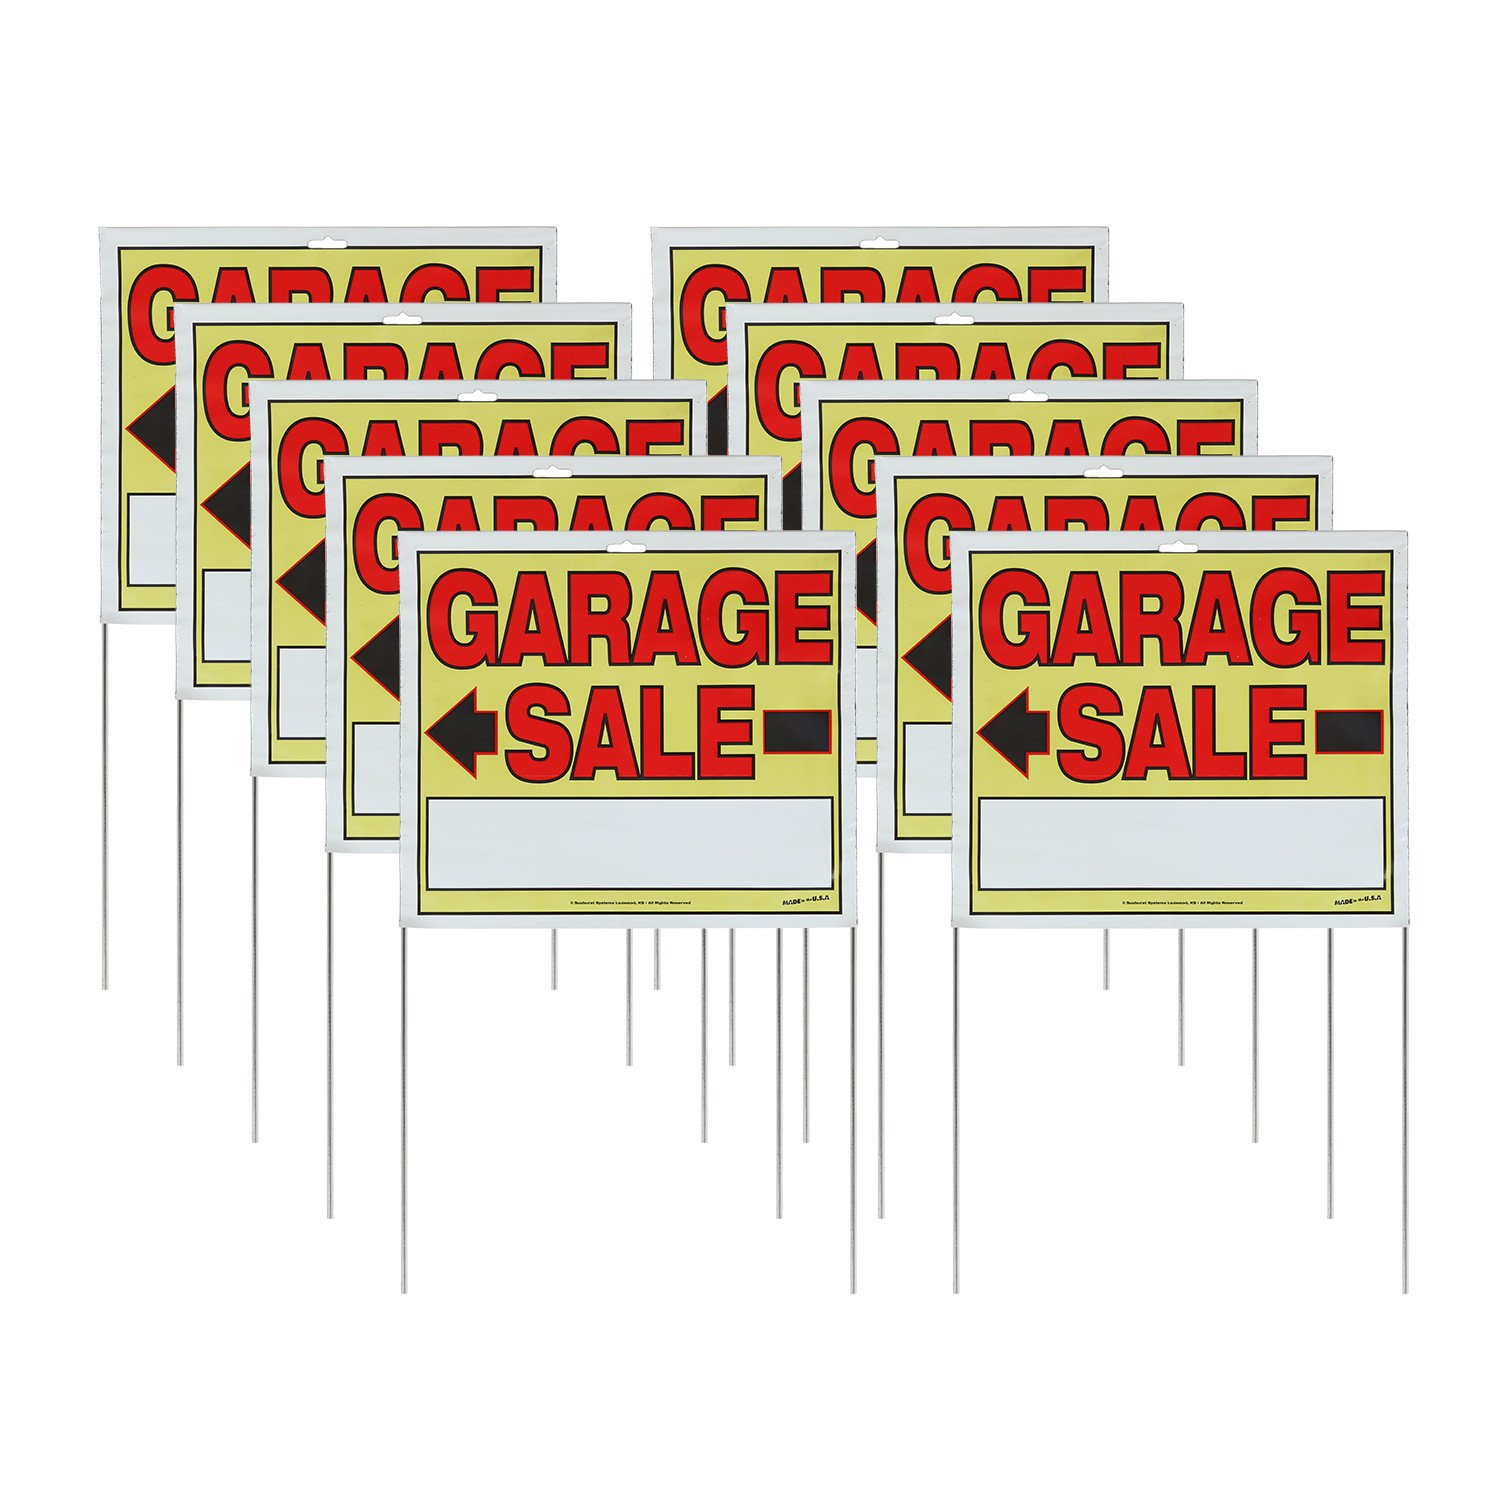 """Sunburst Systems 22""""H x 14""""W Double-sided Garage Sale Signs with Wire U-Stakes, 10 Pack"""